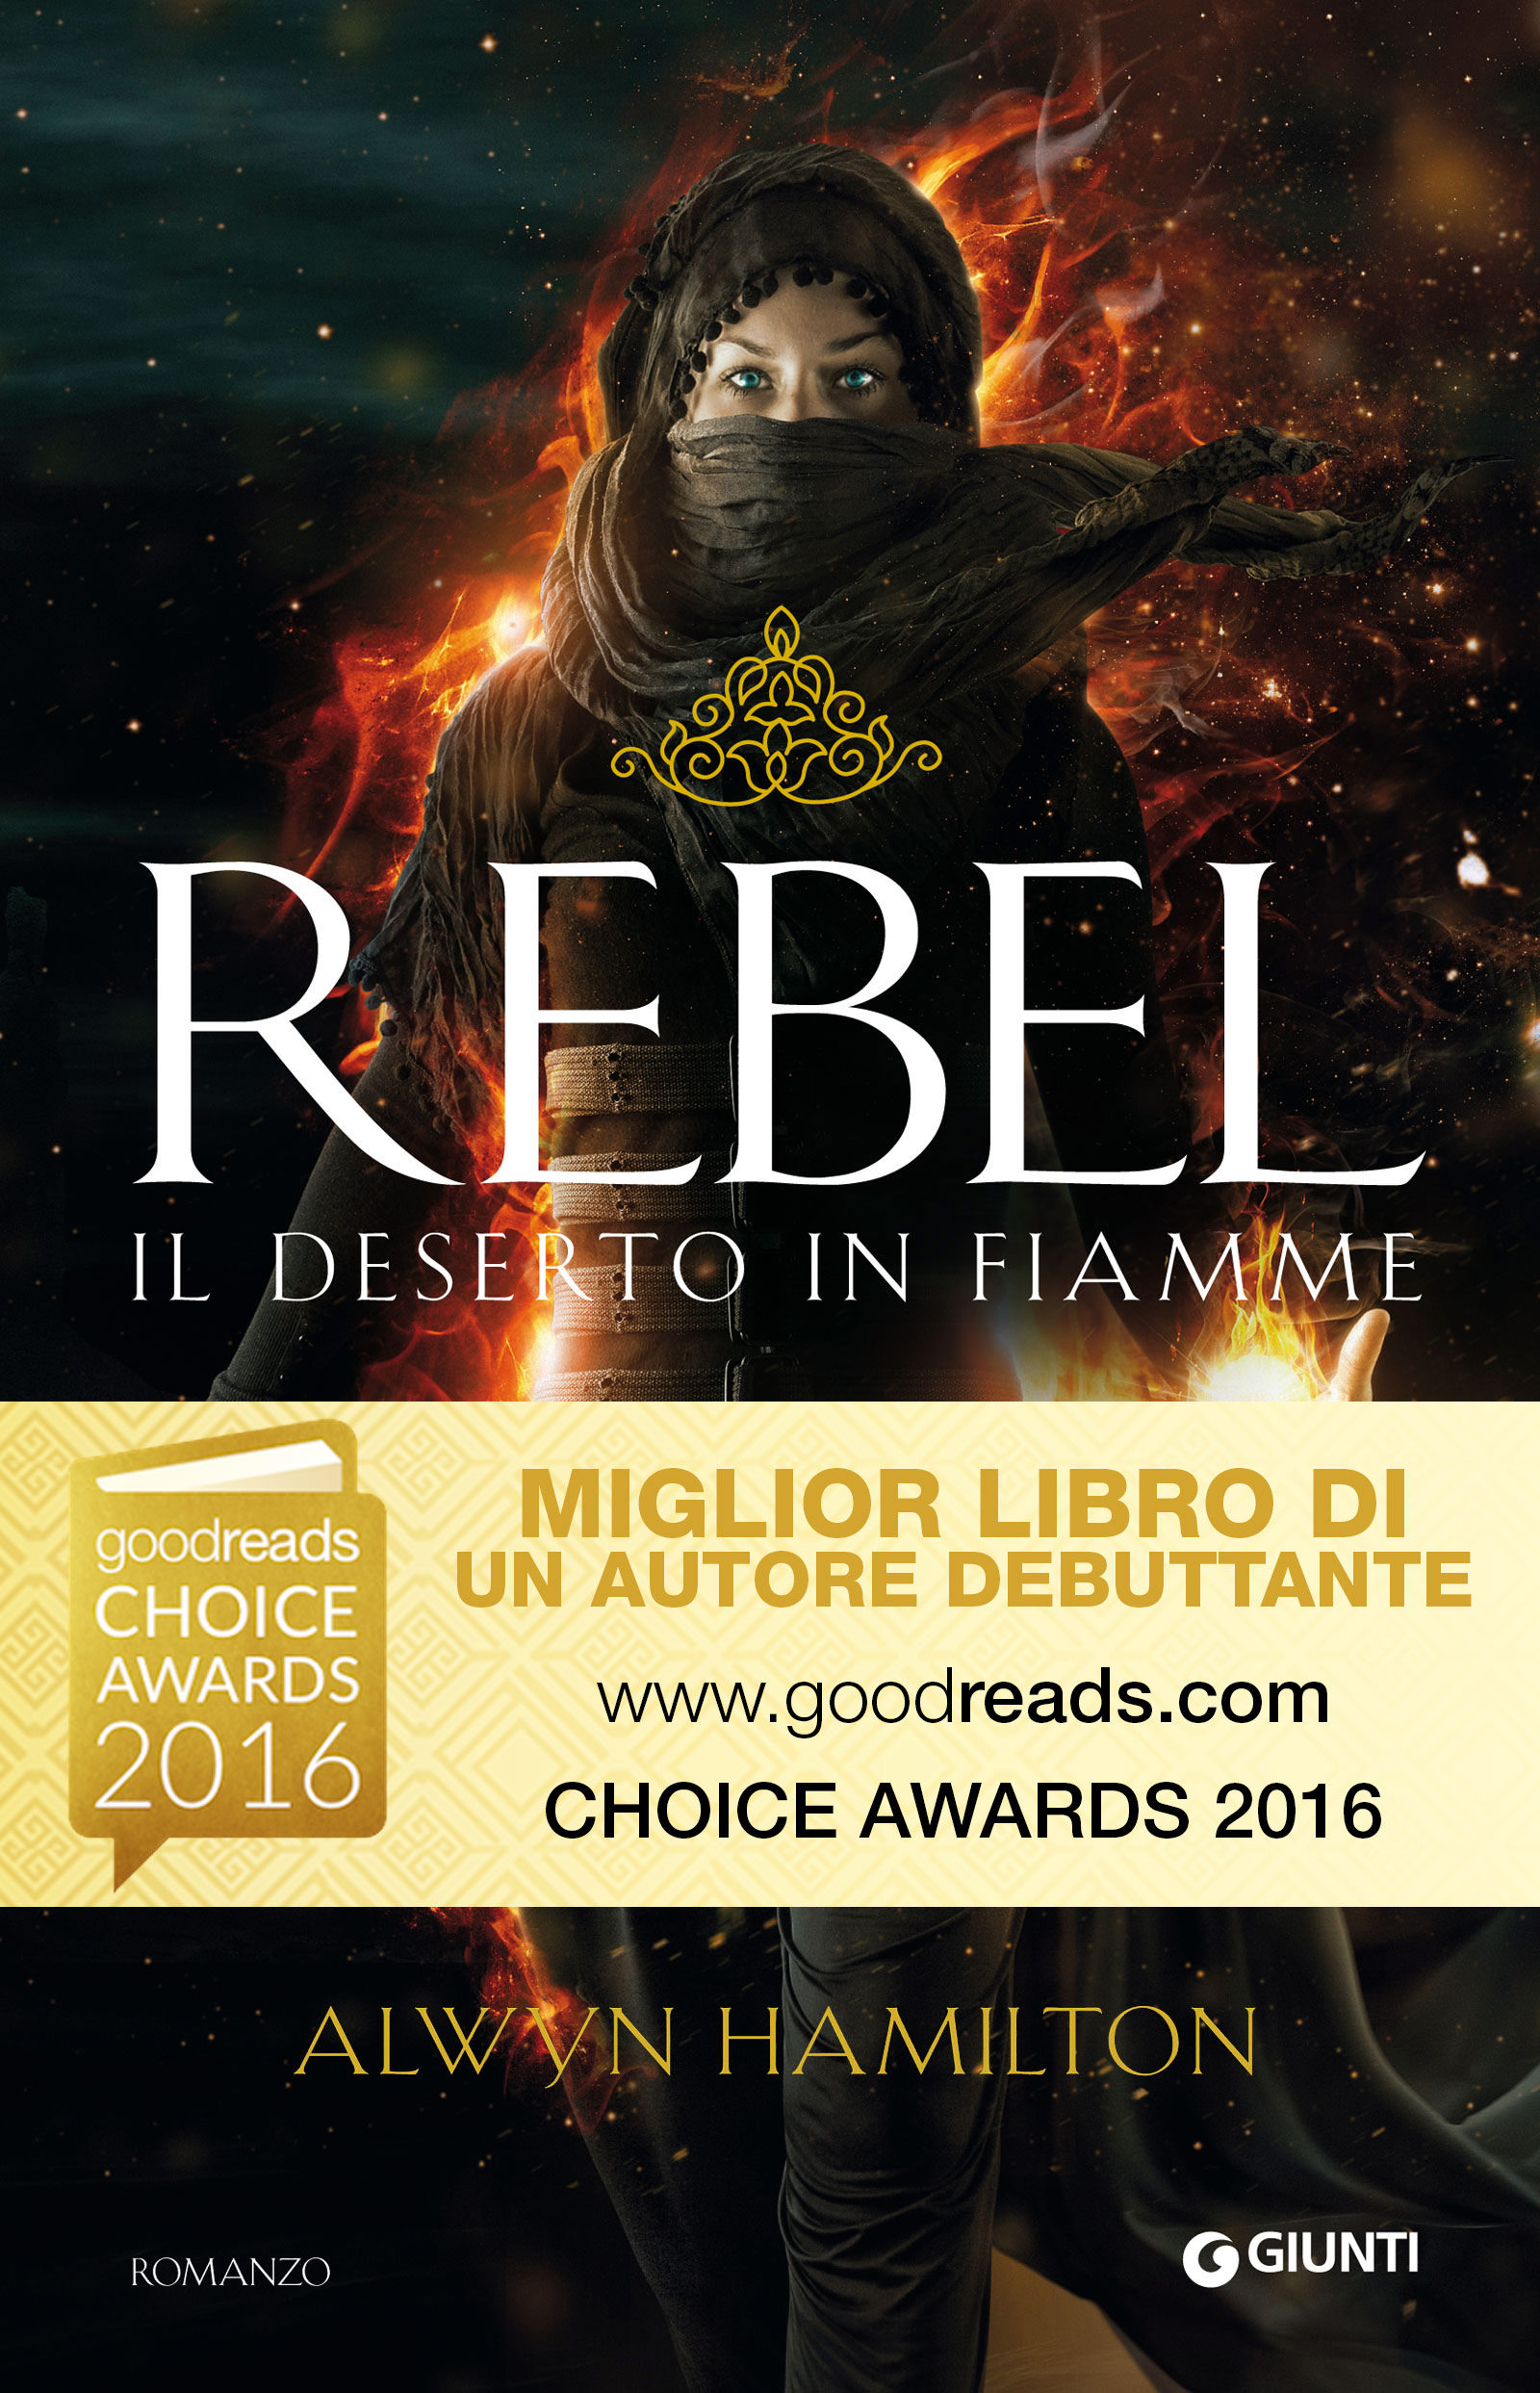 Como Descargar Libros En Goodreads Rebel Il Deserto In Fiamme Ebook Alwyn Hamilton Descargar Libro Pdf O Epub 9788809819122